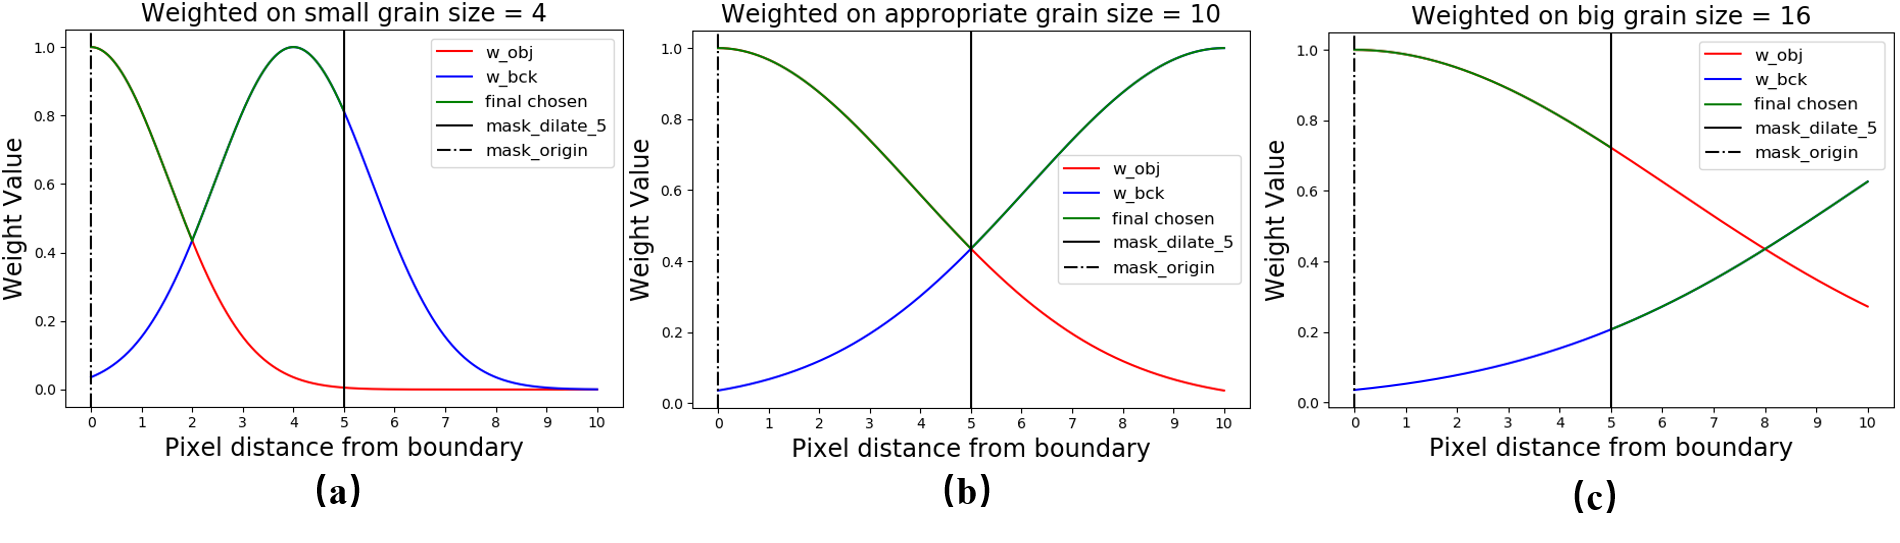 Applying to different grain size by using adaptive boundary weighting.